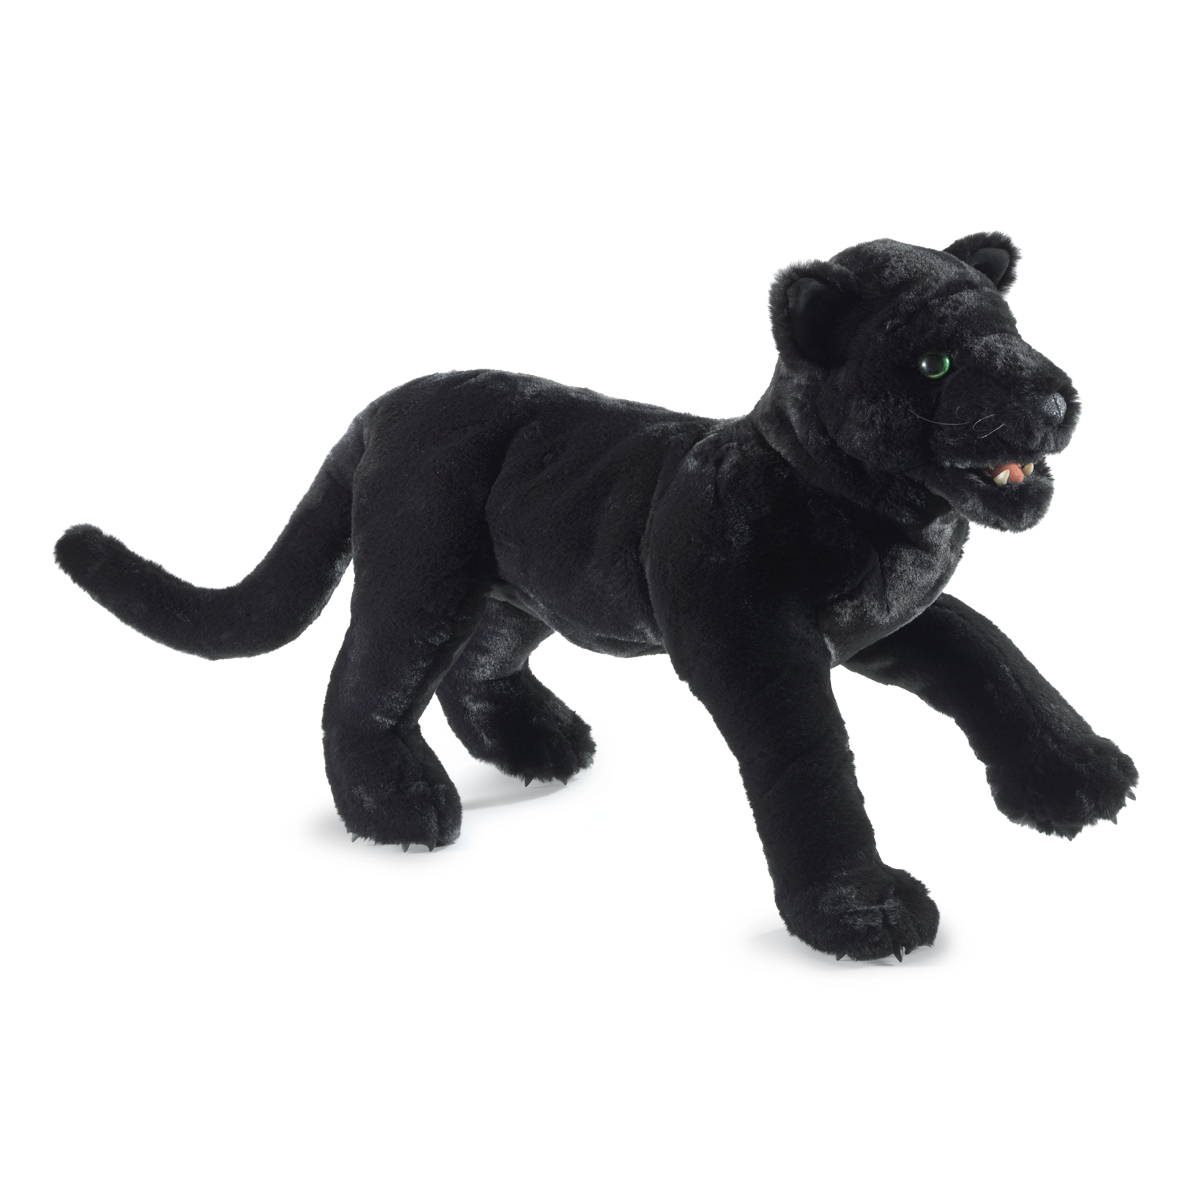 Black Panther Puppet 3155